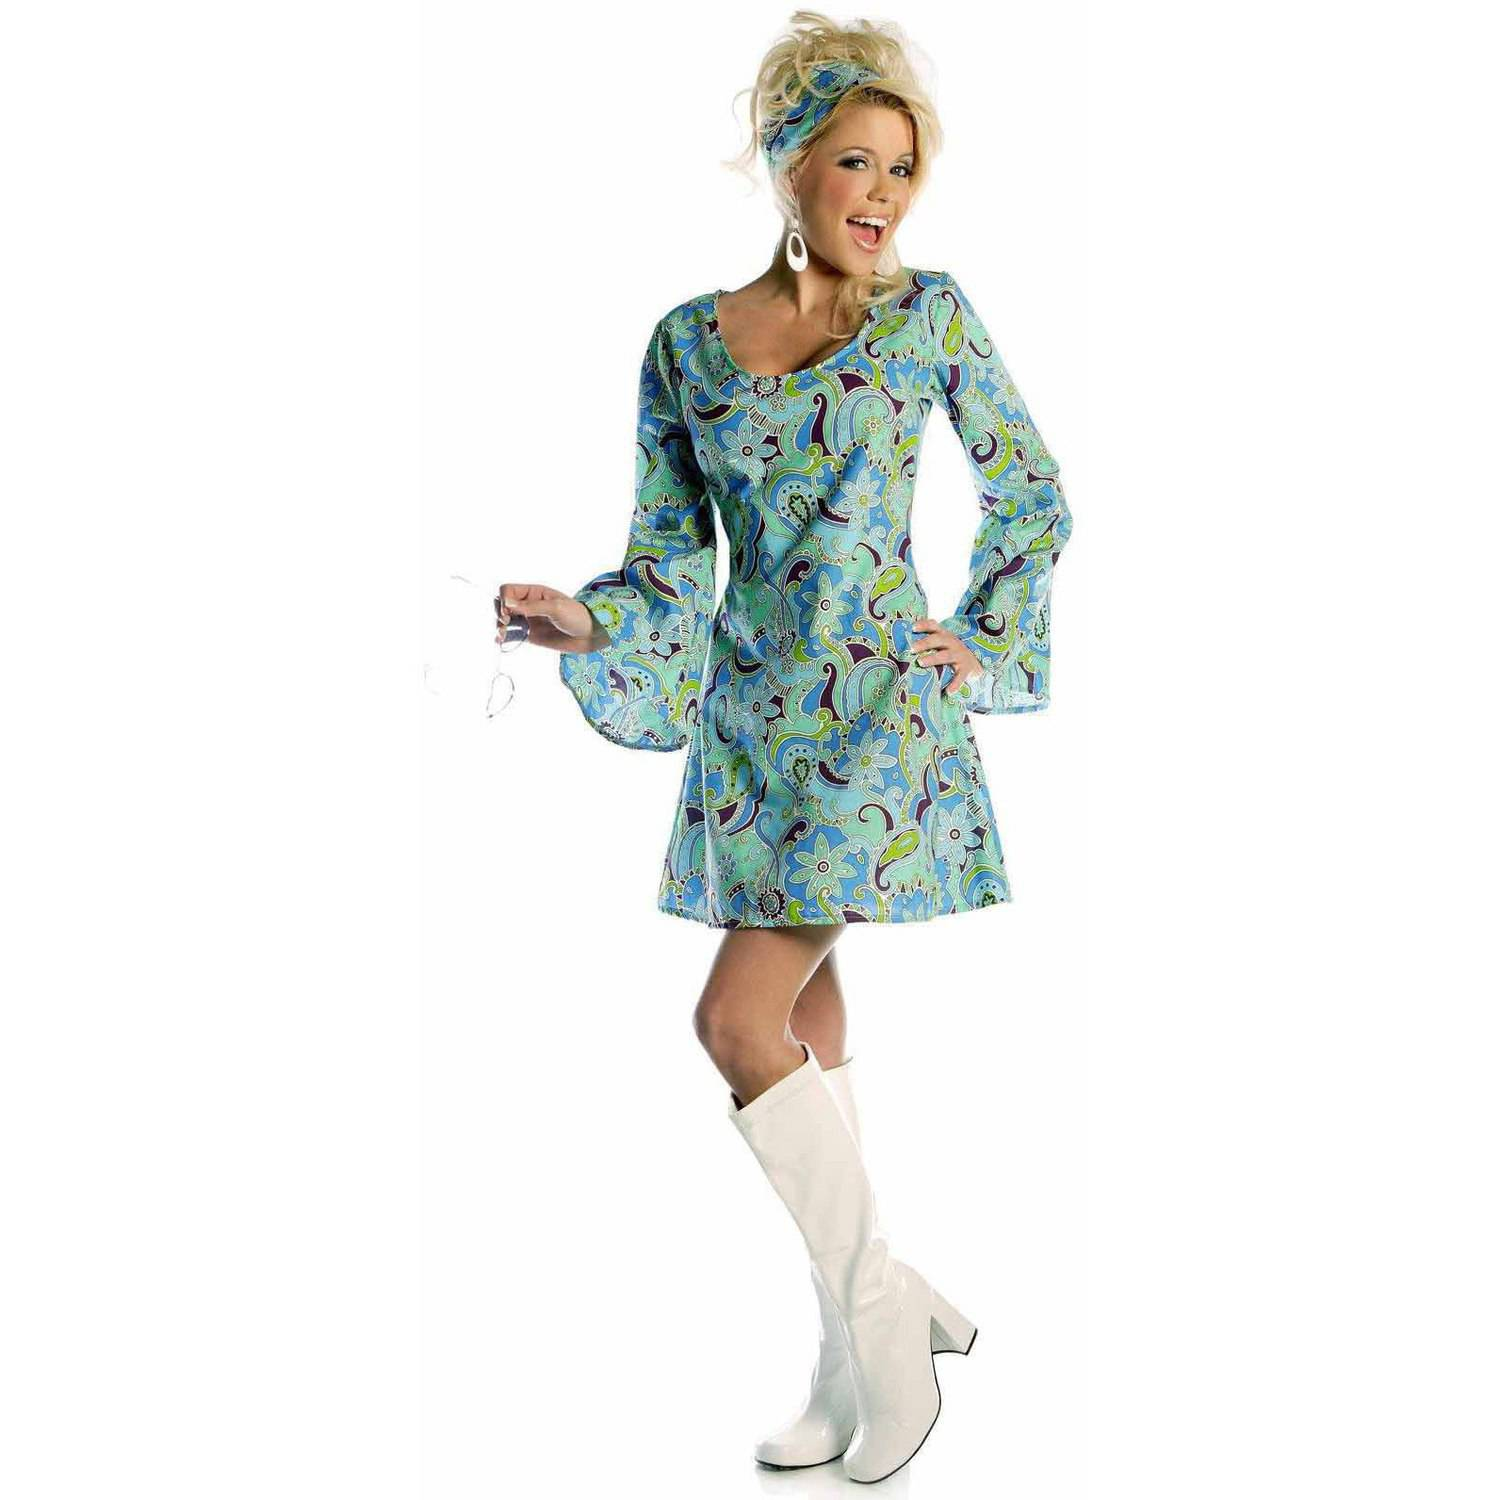 Go Go Blue Women's Adult Halloween Costume